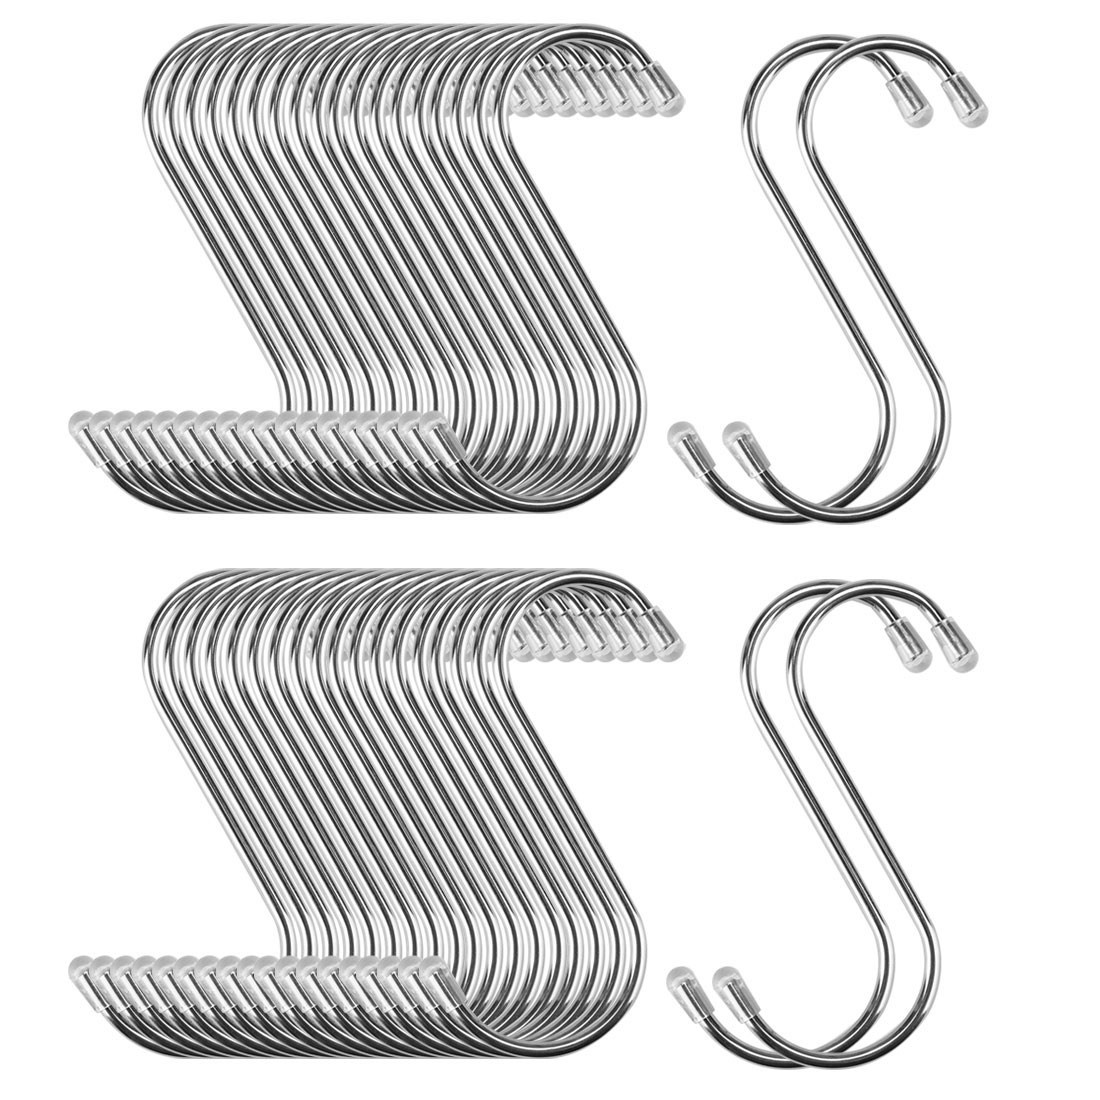 40pcs 2.56 Inch S Shaped Hook Stainless Steel for Kitchenware Hat Coat Holder